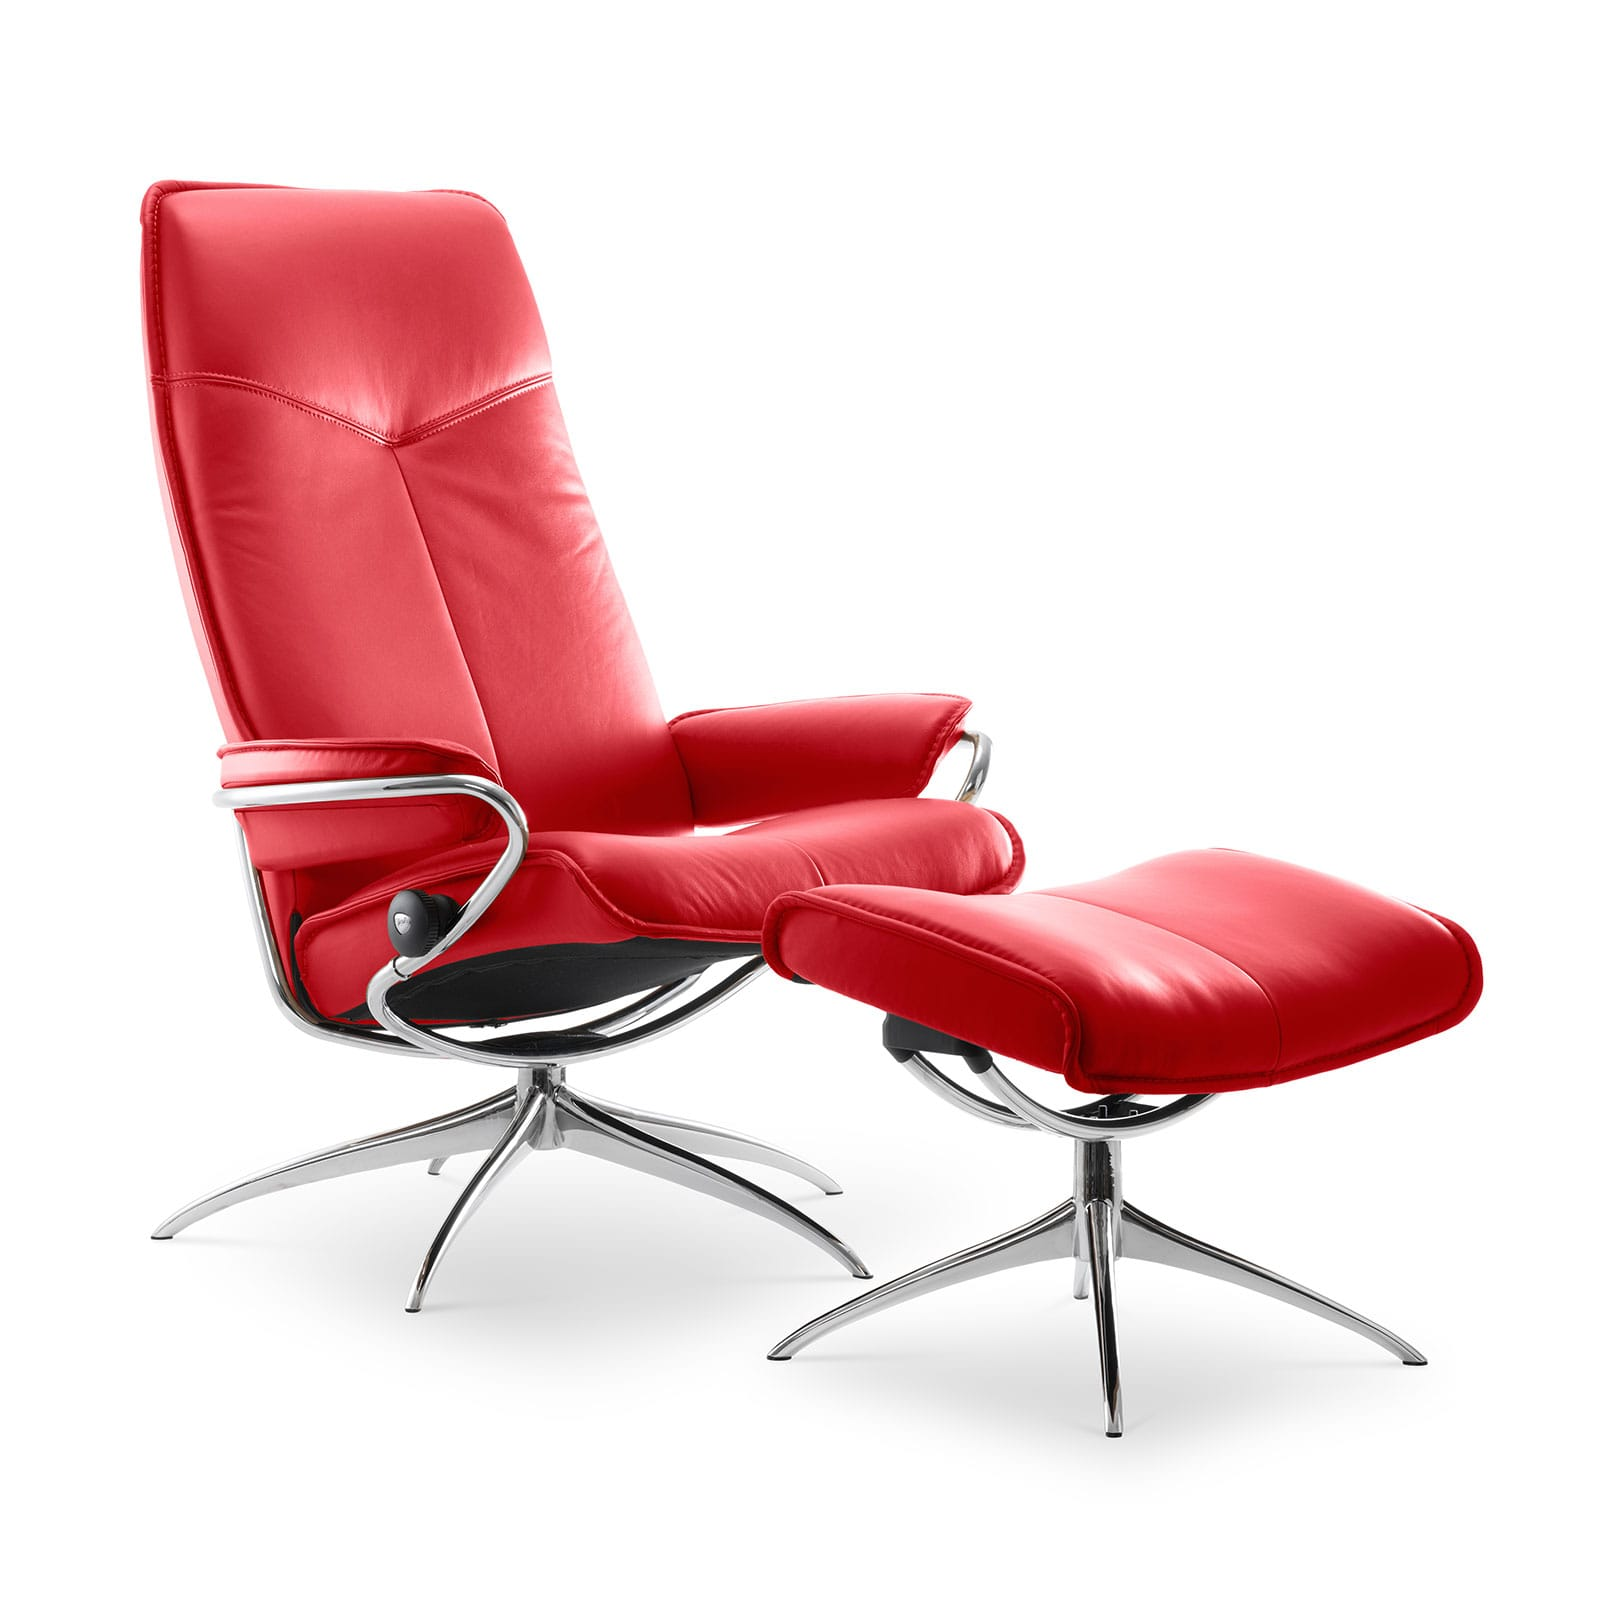 Stressless Sessel Berlin Stressless Sessel City High Back Mit Hocker Chili Red